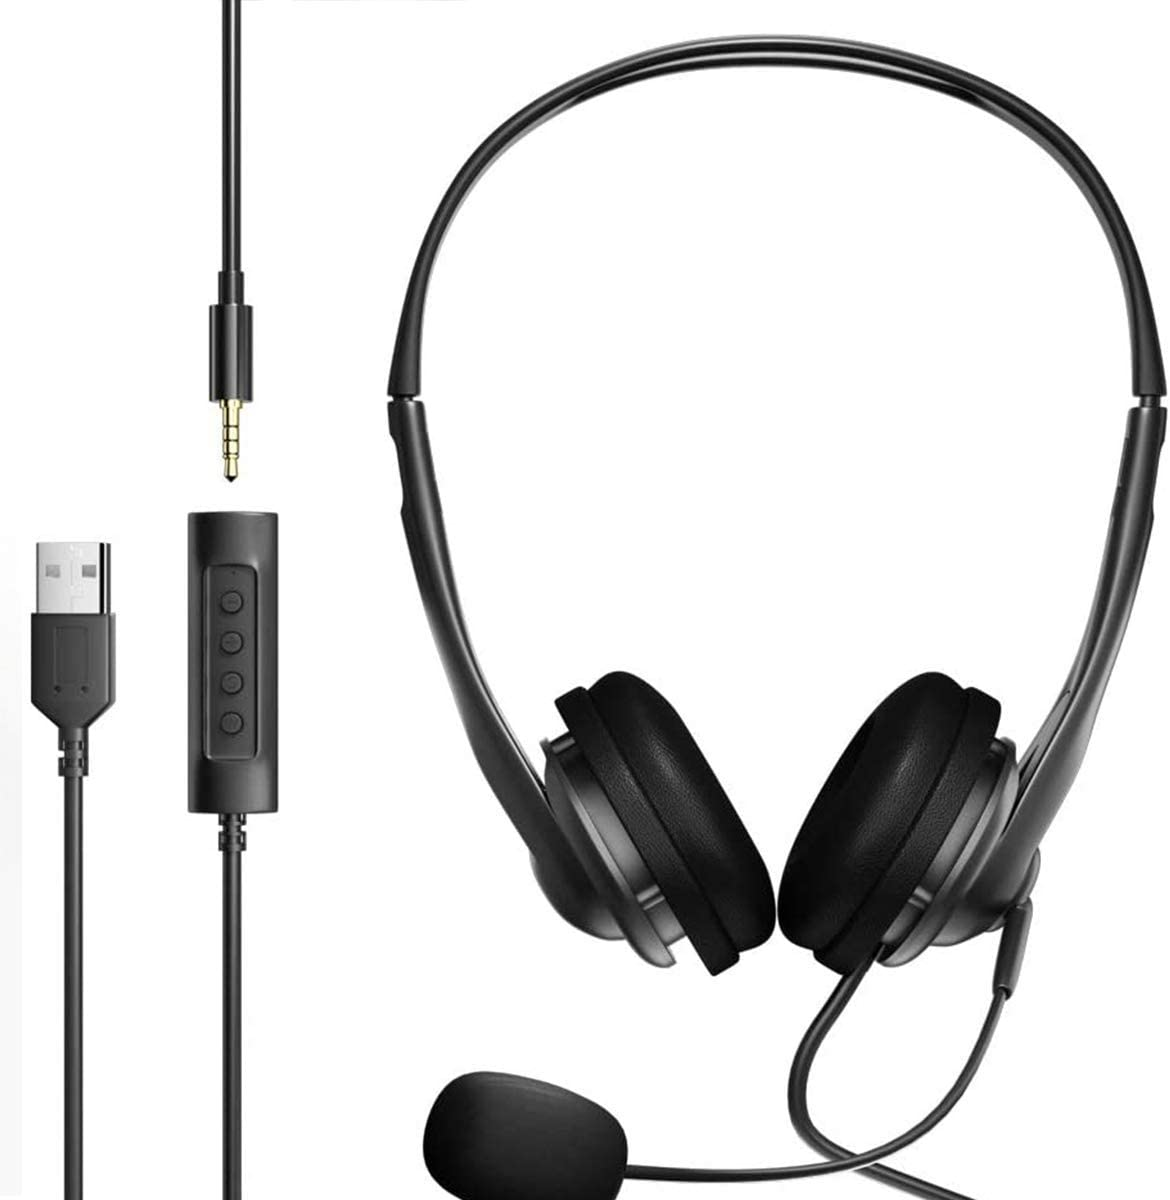 3.5 and USB Headset with Microphone Combo for Laptop Computer, PC, Zoom, Skype, Video Conference Calls, Lightweight Headphones with Mute Button mic Boom